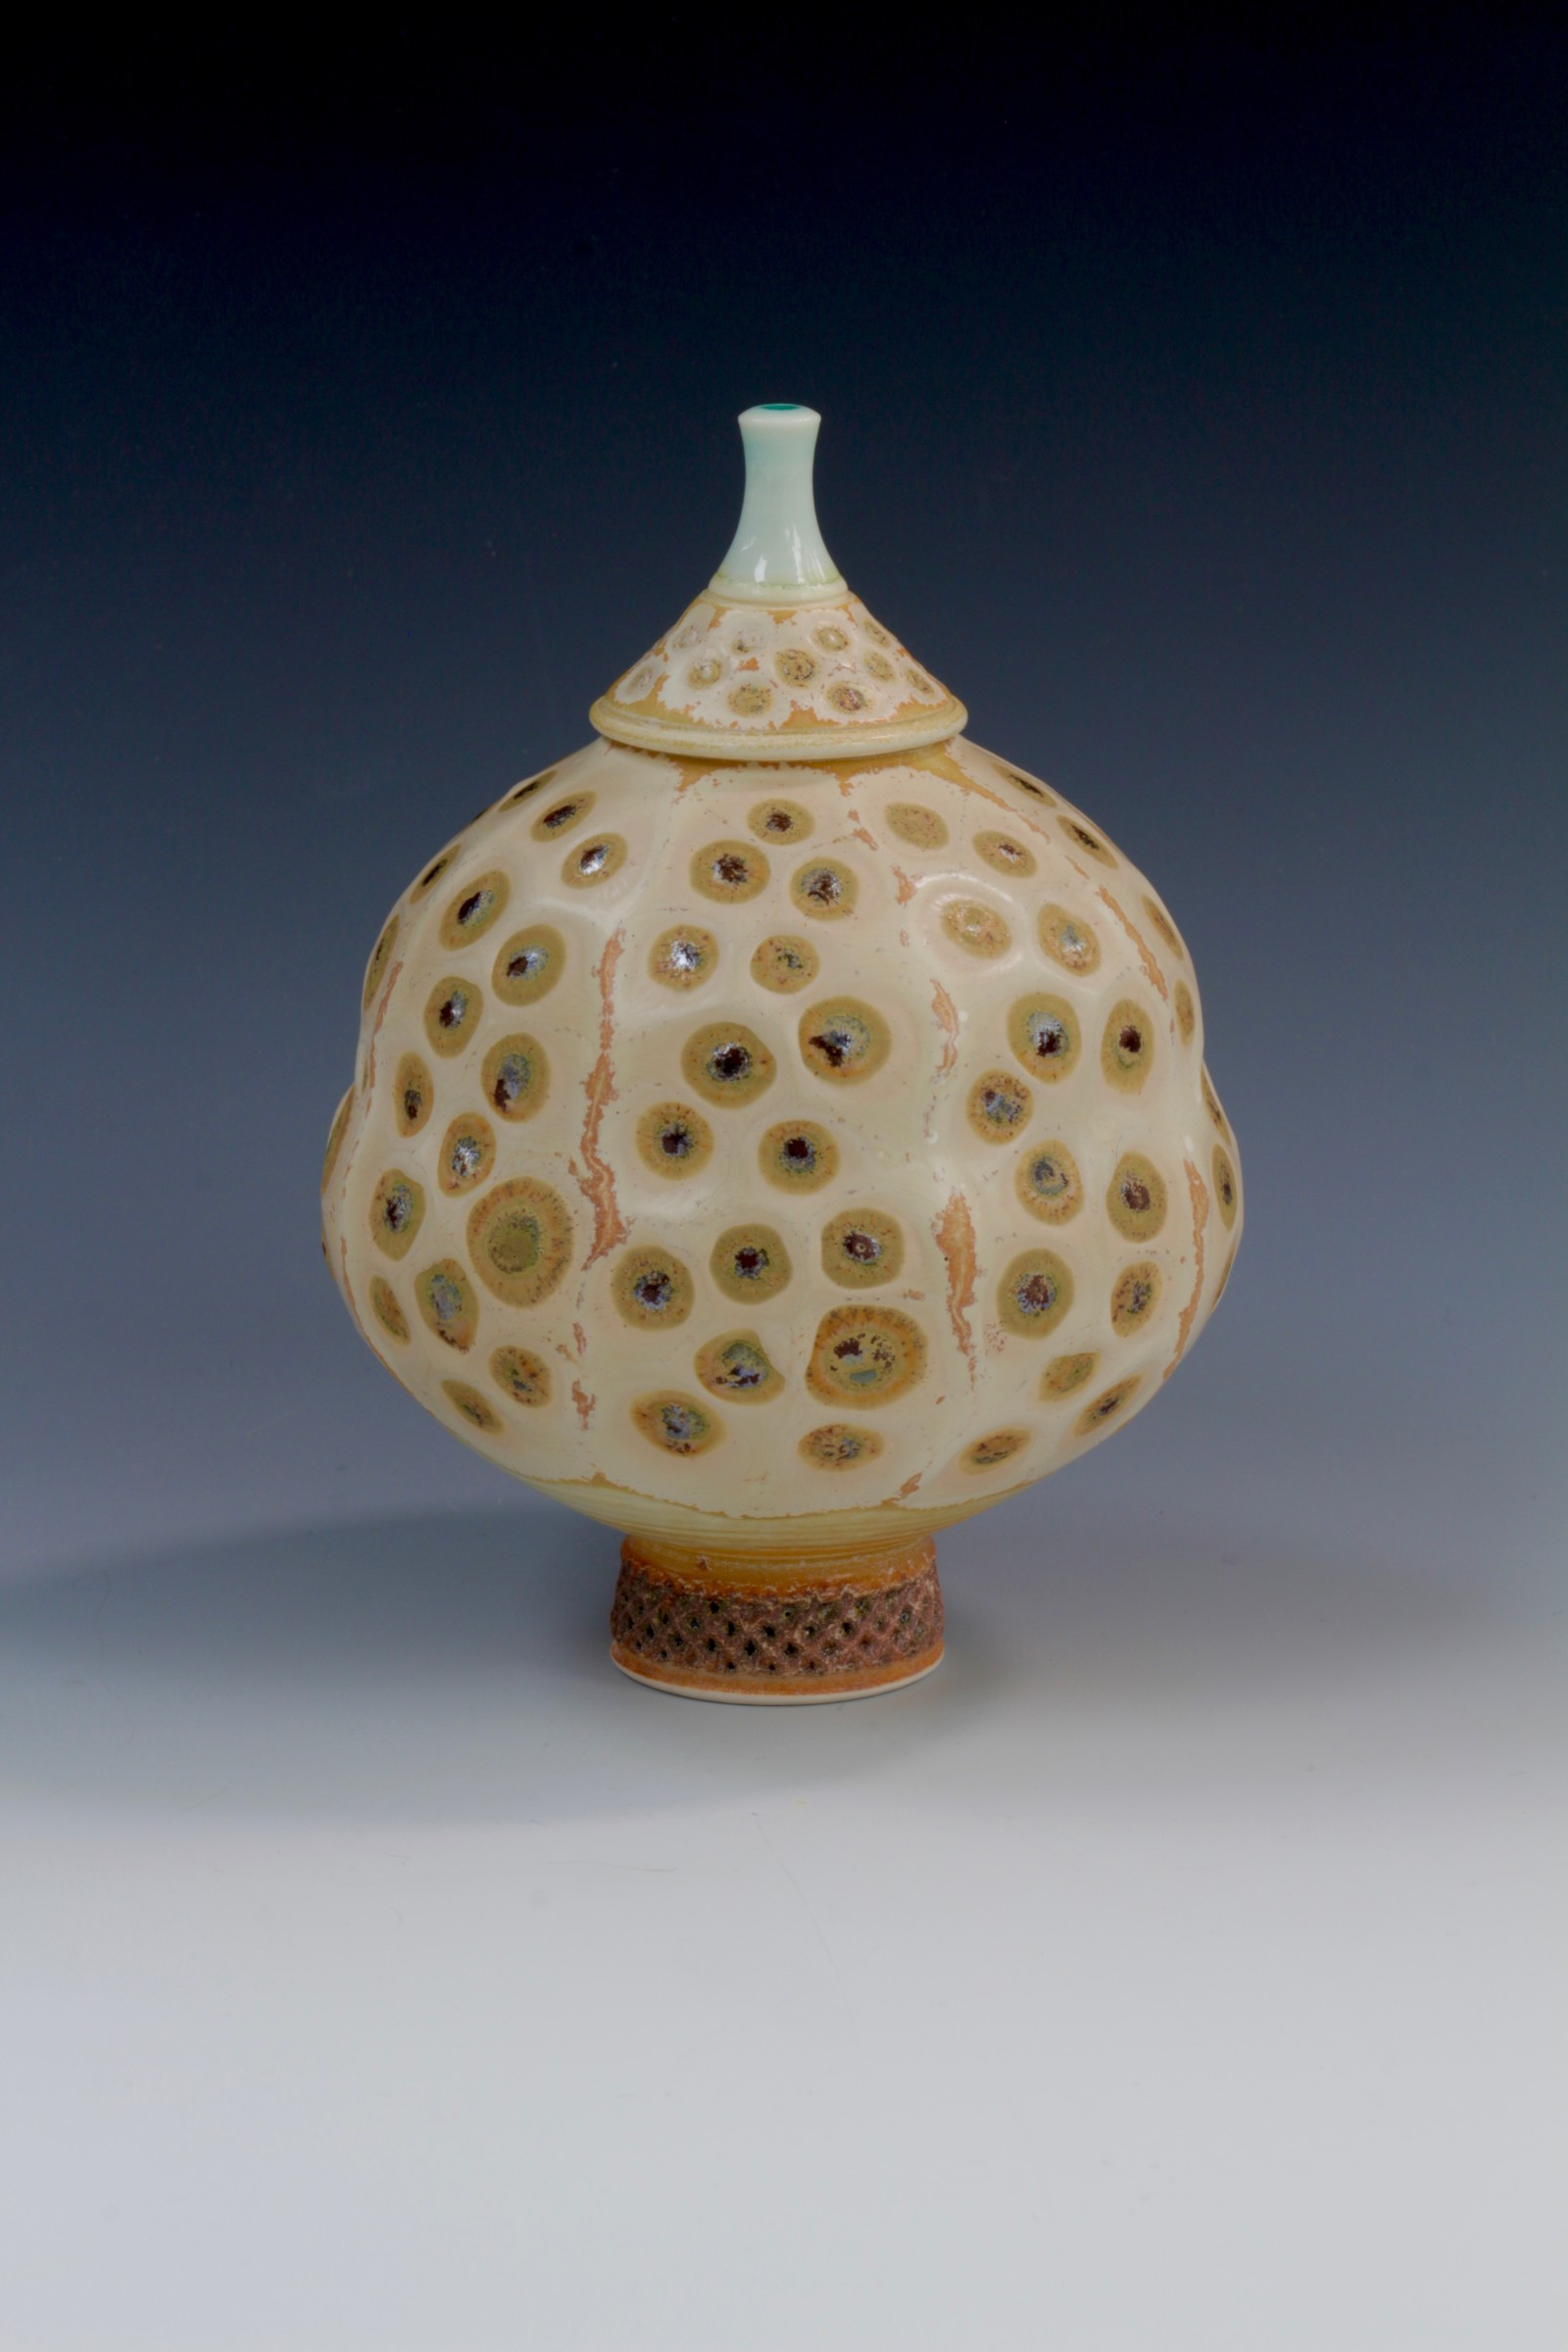 "<span class=""link fancybox-details-link""><a href=""/artists/61-geoffrey-swindell/works/6907-geoffrey-swindell-lidded-pot-2020/"">View Detail Page</a></span><div class=""artist""><strong>Geoffrey Swindell</strong></div> <div class=""title""><em>Lidded Pot</em>, 2020</div> <div class=""medium"">Porcelain</div><div class=""price"">£210.00</div><div class=""copyright_line"">Copyright The Artist</div>"